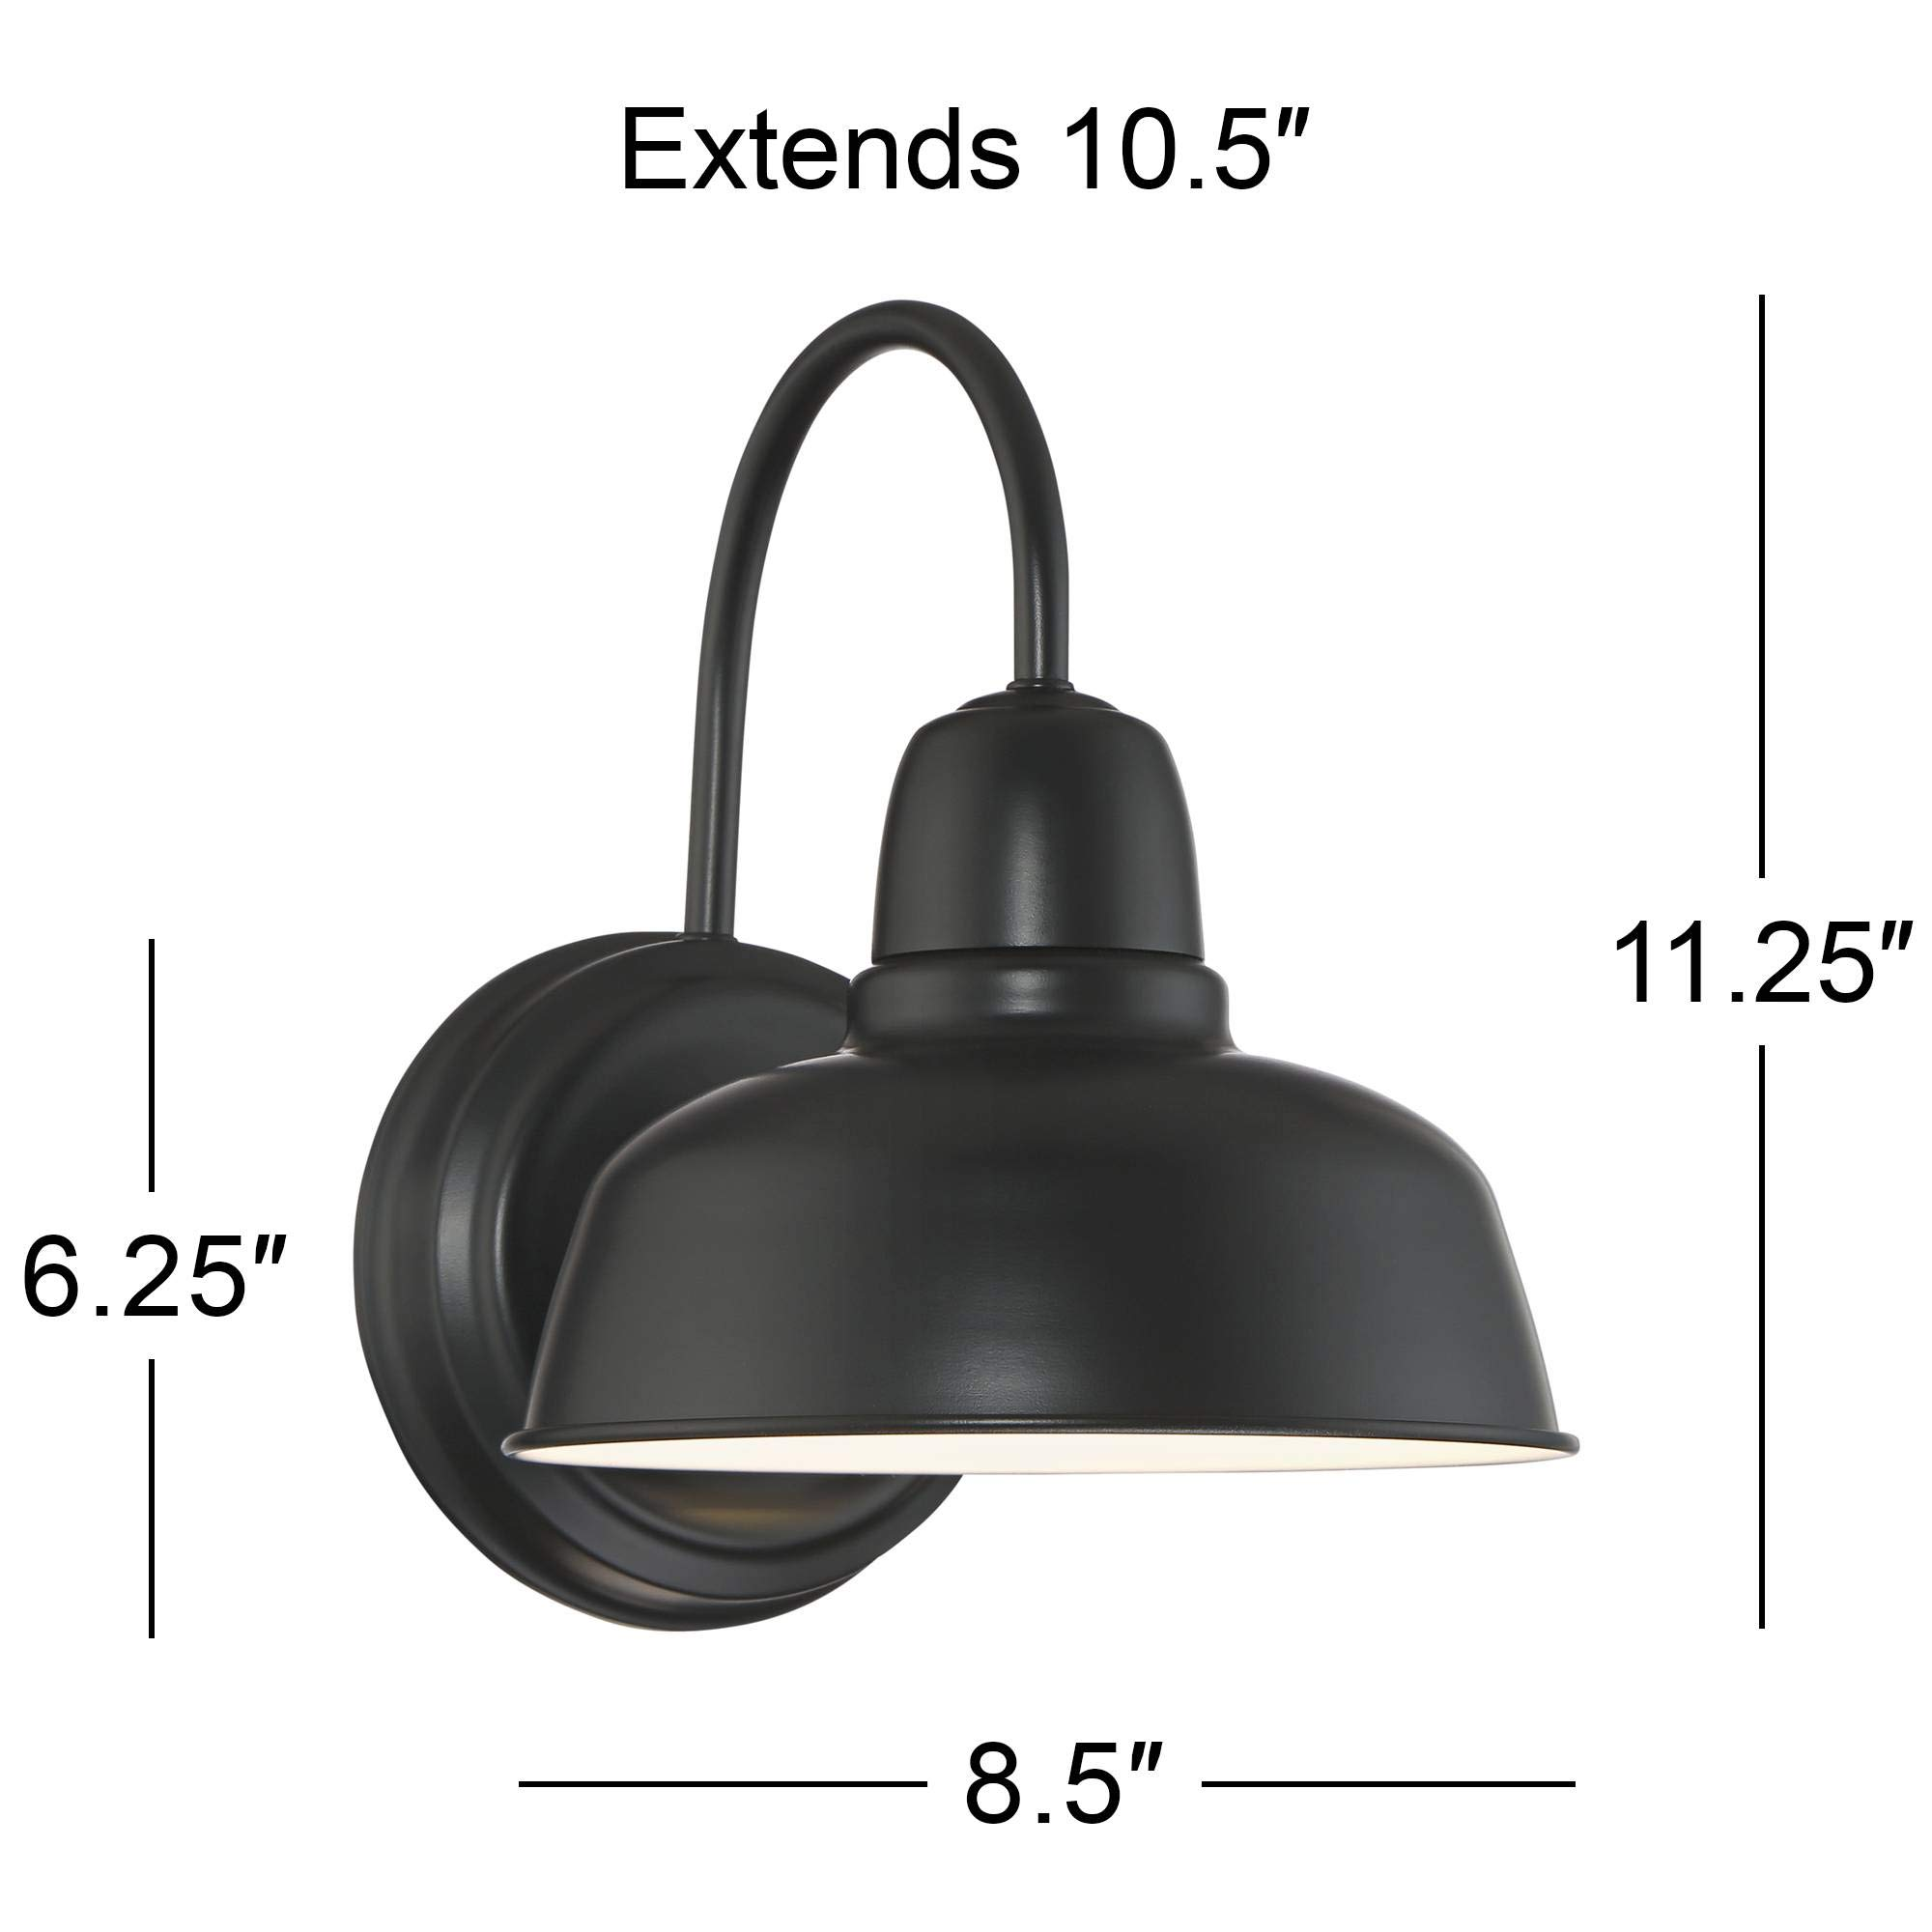 Urban Barn Rustic Outdoor Wall Light Fixture Farmhouse Black 11 1/4'' Sconce for Exterior House Deck Patio - John Timberland by John Timberland (Image #6)